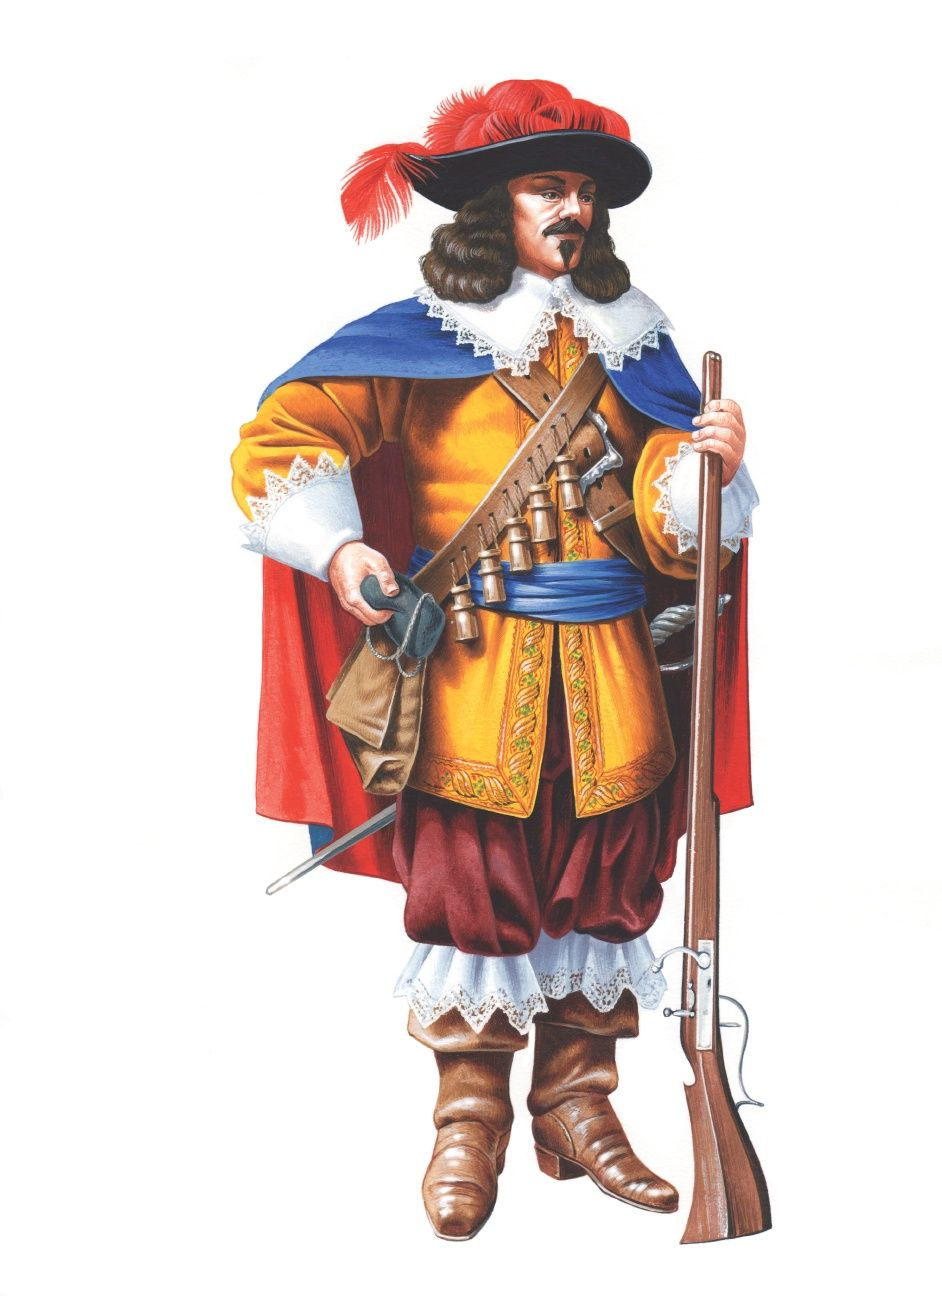 french musketeer thirty years war thirty years war art musketeer google search